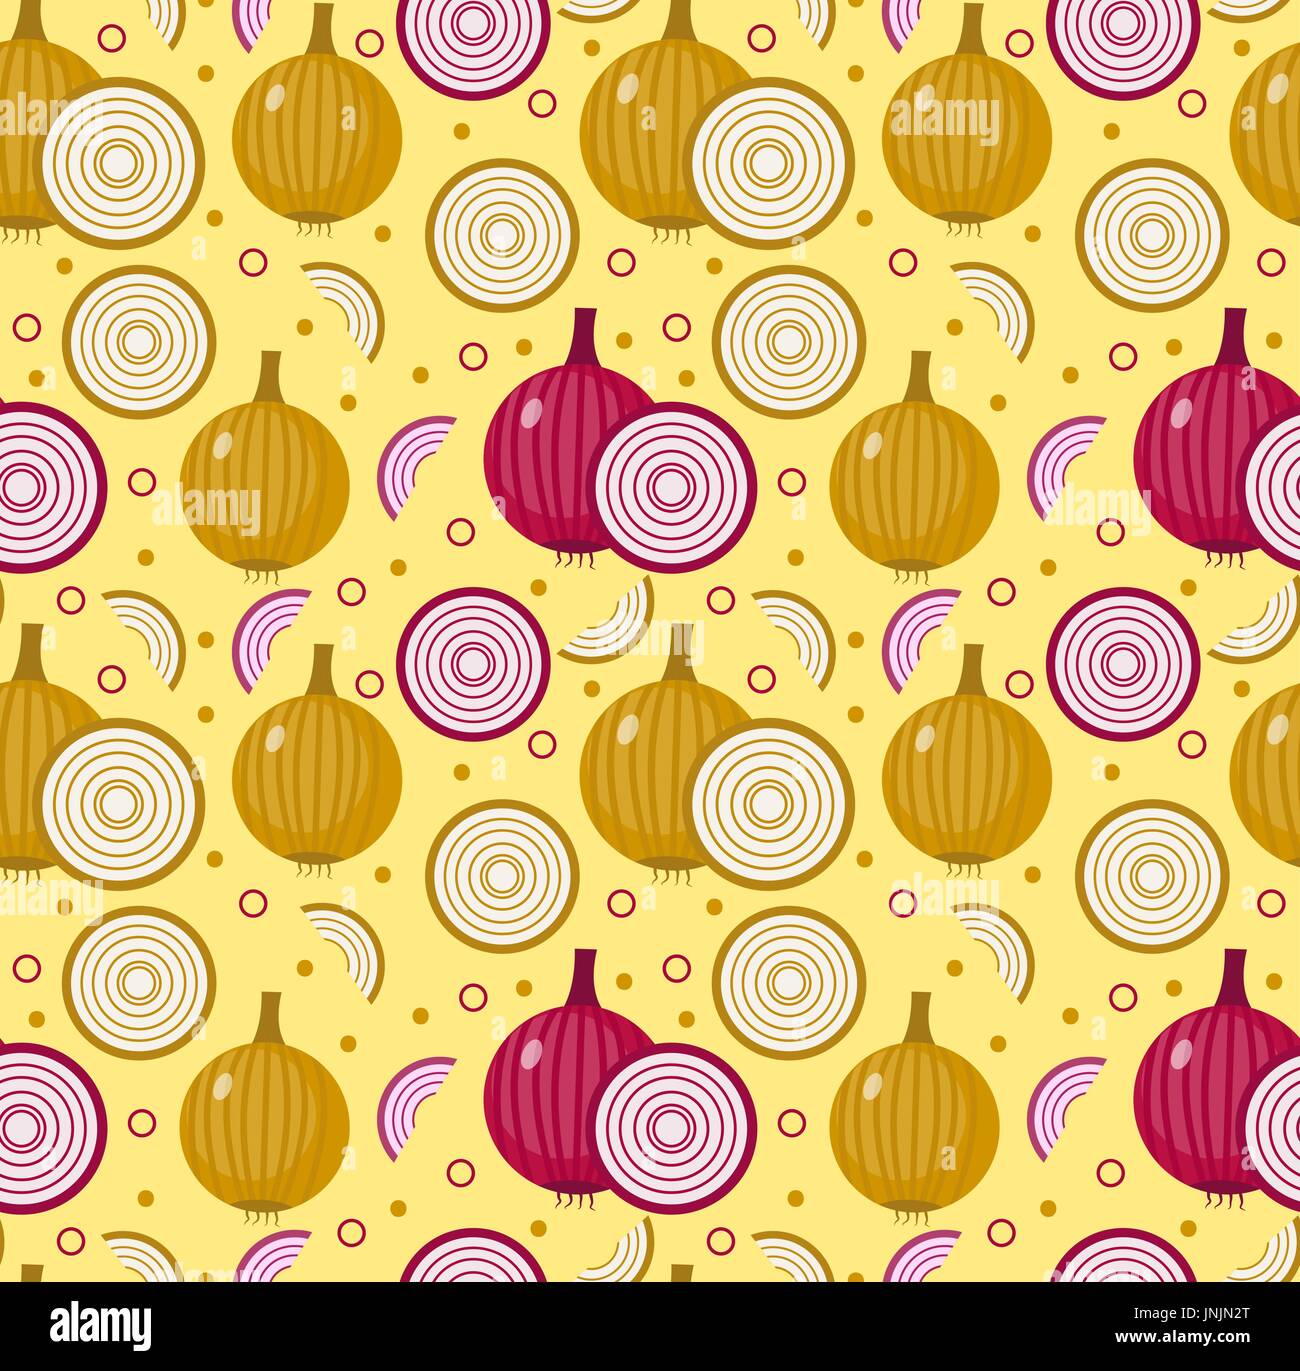 Onions seamless pattern. Bulb onion endless background, texture. Vegetable background. Vector illustration. - Stock Vector